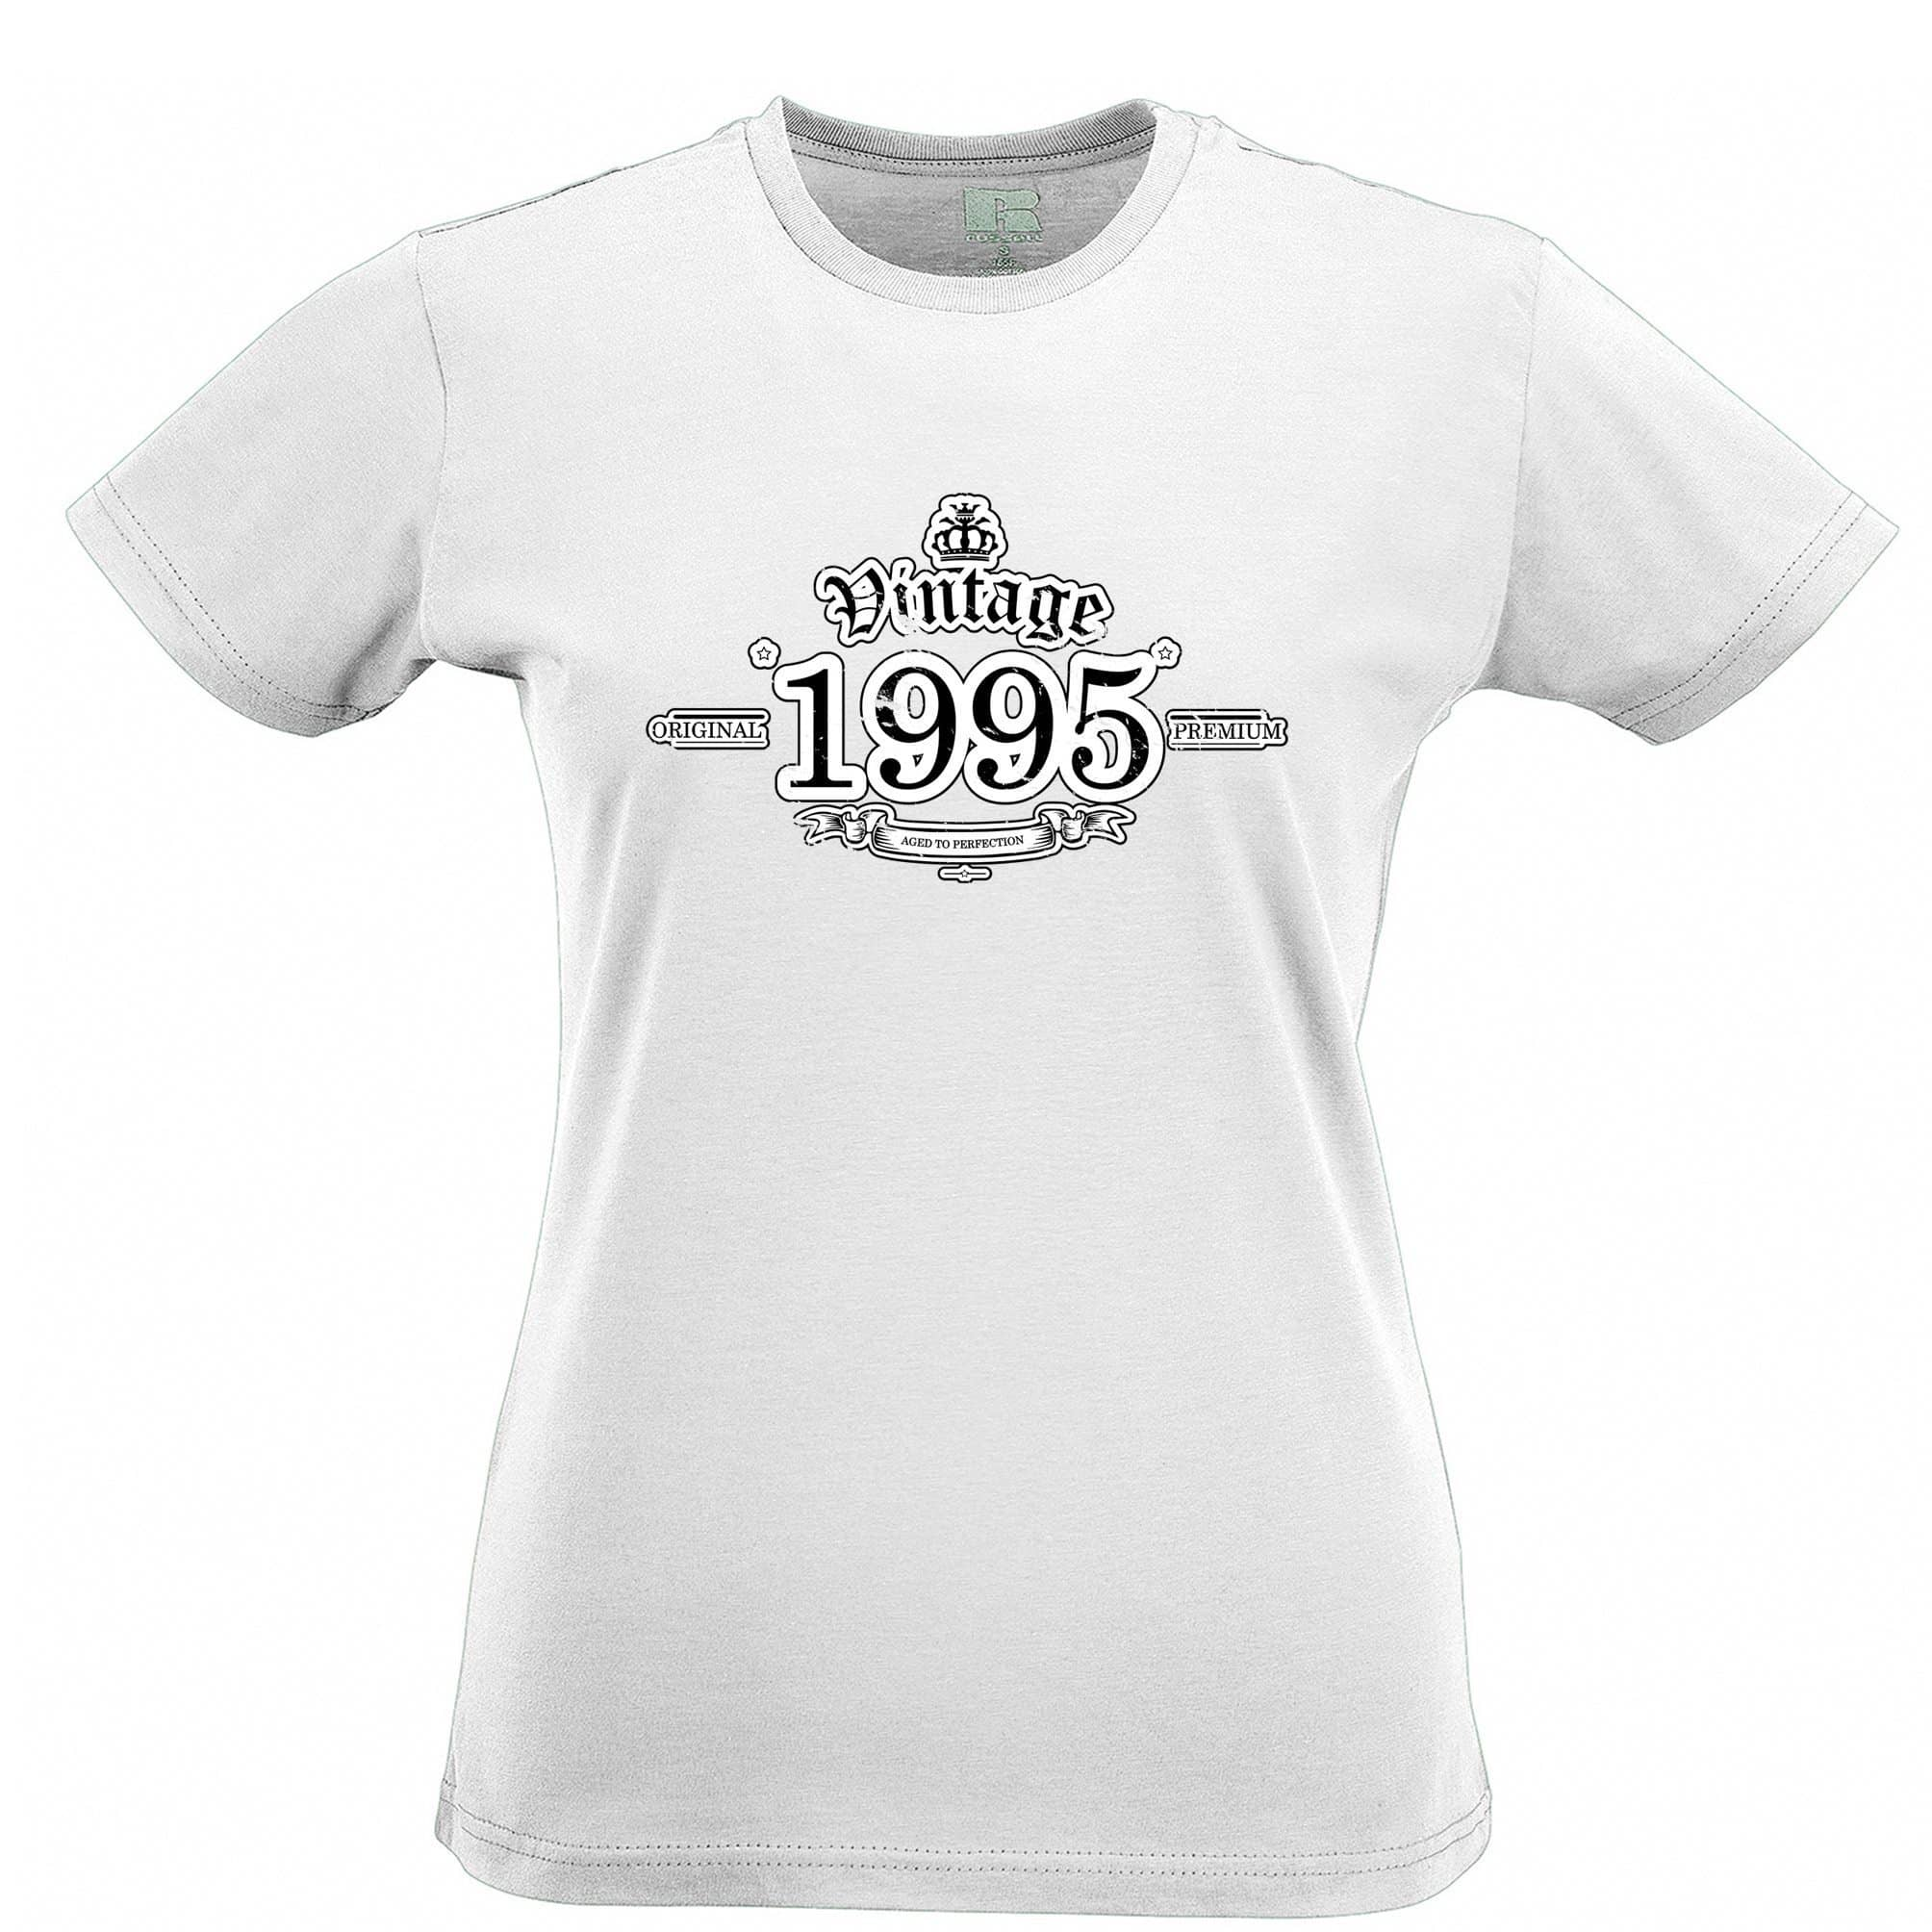 23rd Birthday Womens T Shirt Vintage 1995 Aged To Perfection